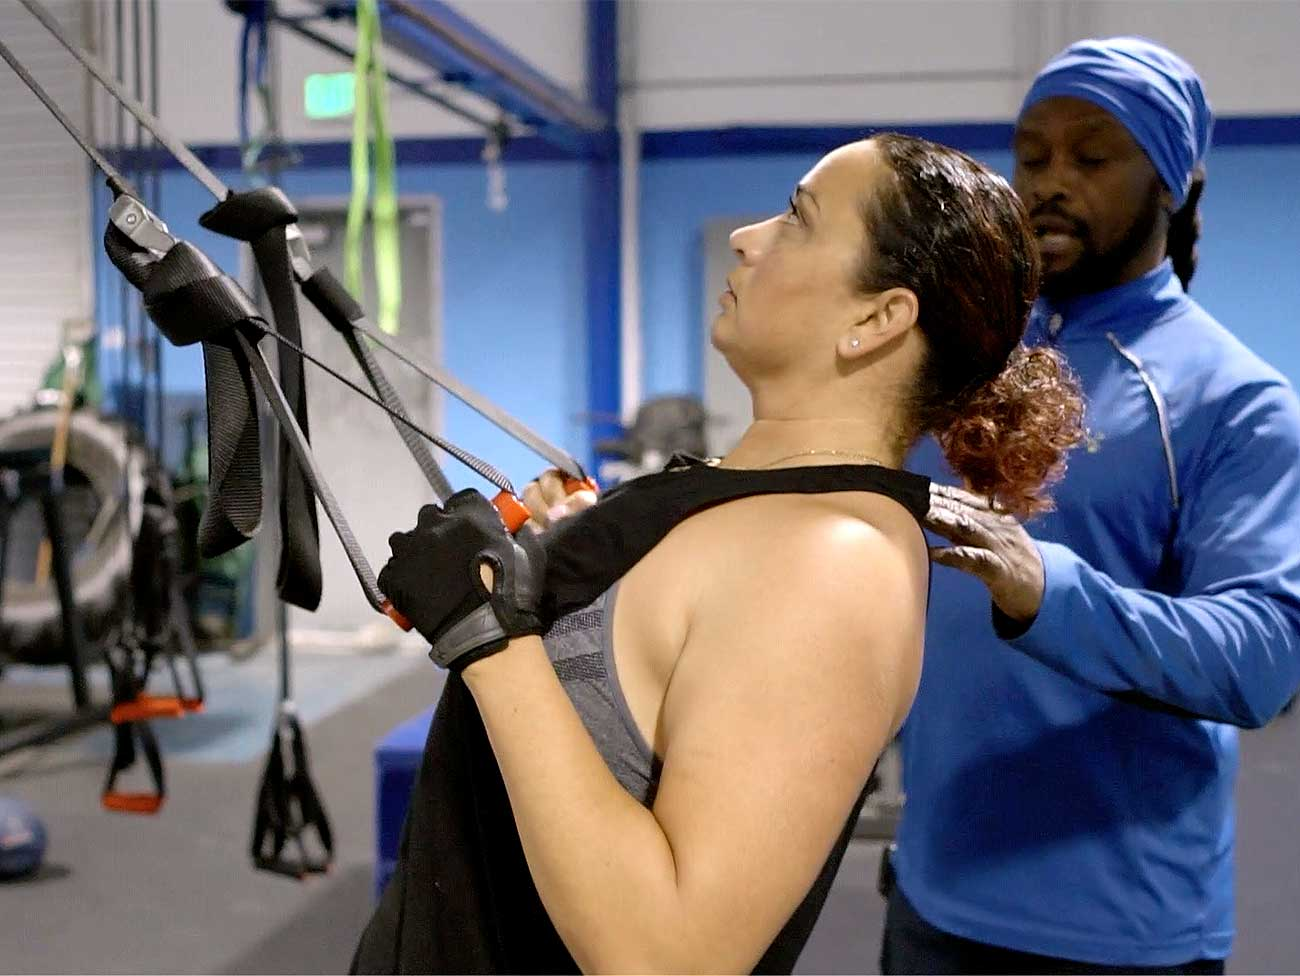 Kaiser Permanente member Michelle Wofford working out at the gym with a personal trainer.